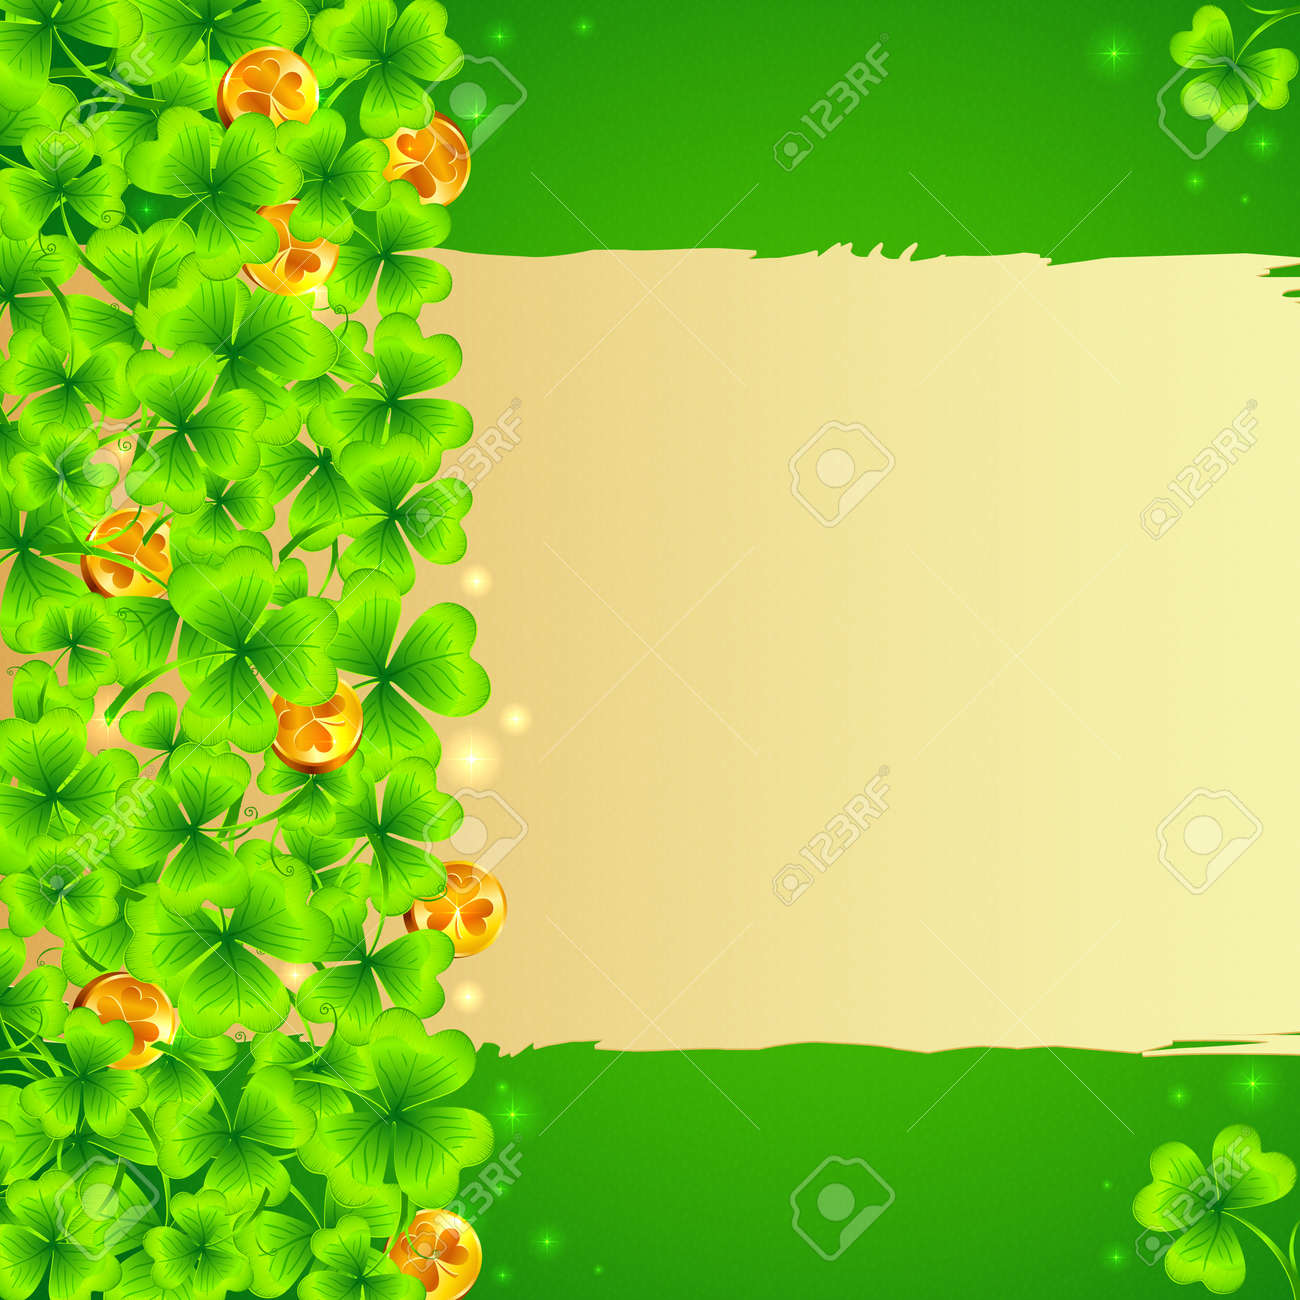 Green clovers background with golden coins and sheet of old paper with text. Vector background for Saint Patrick's Day. Stock Vector - 18410466